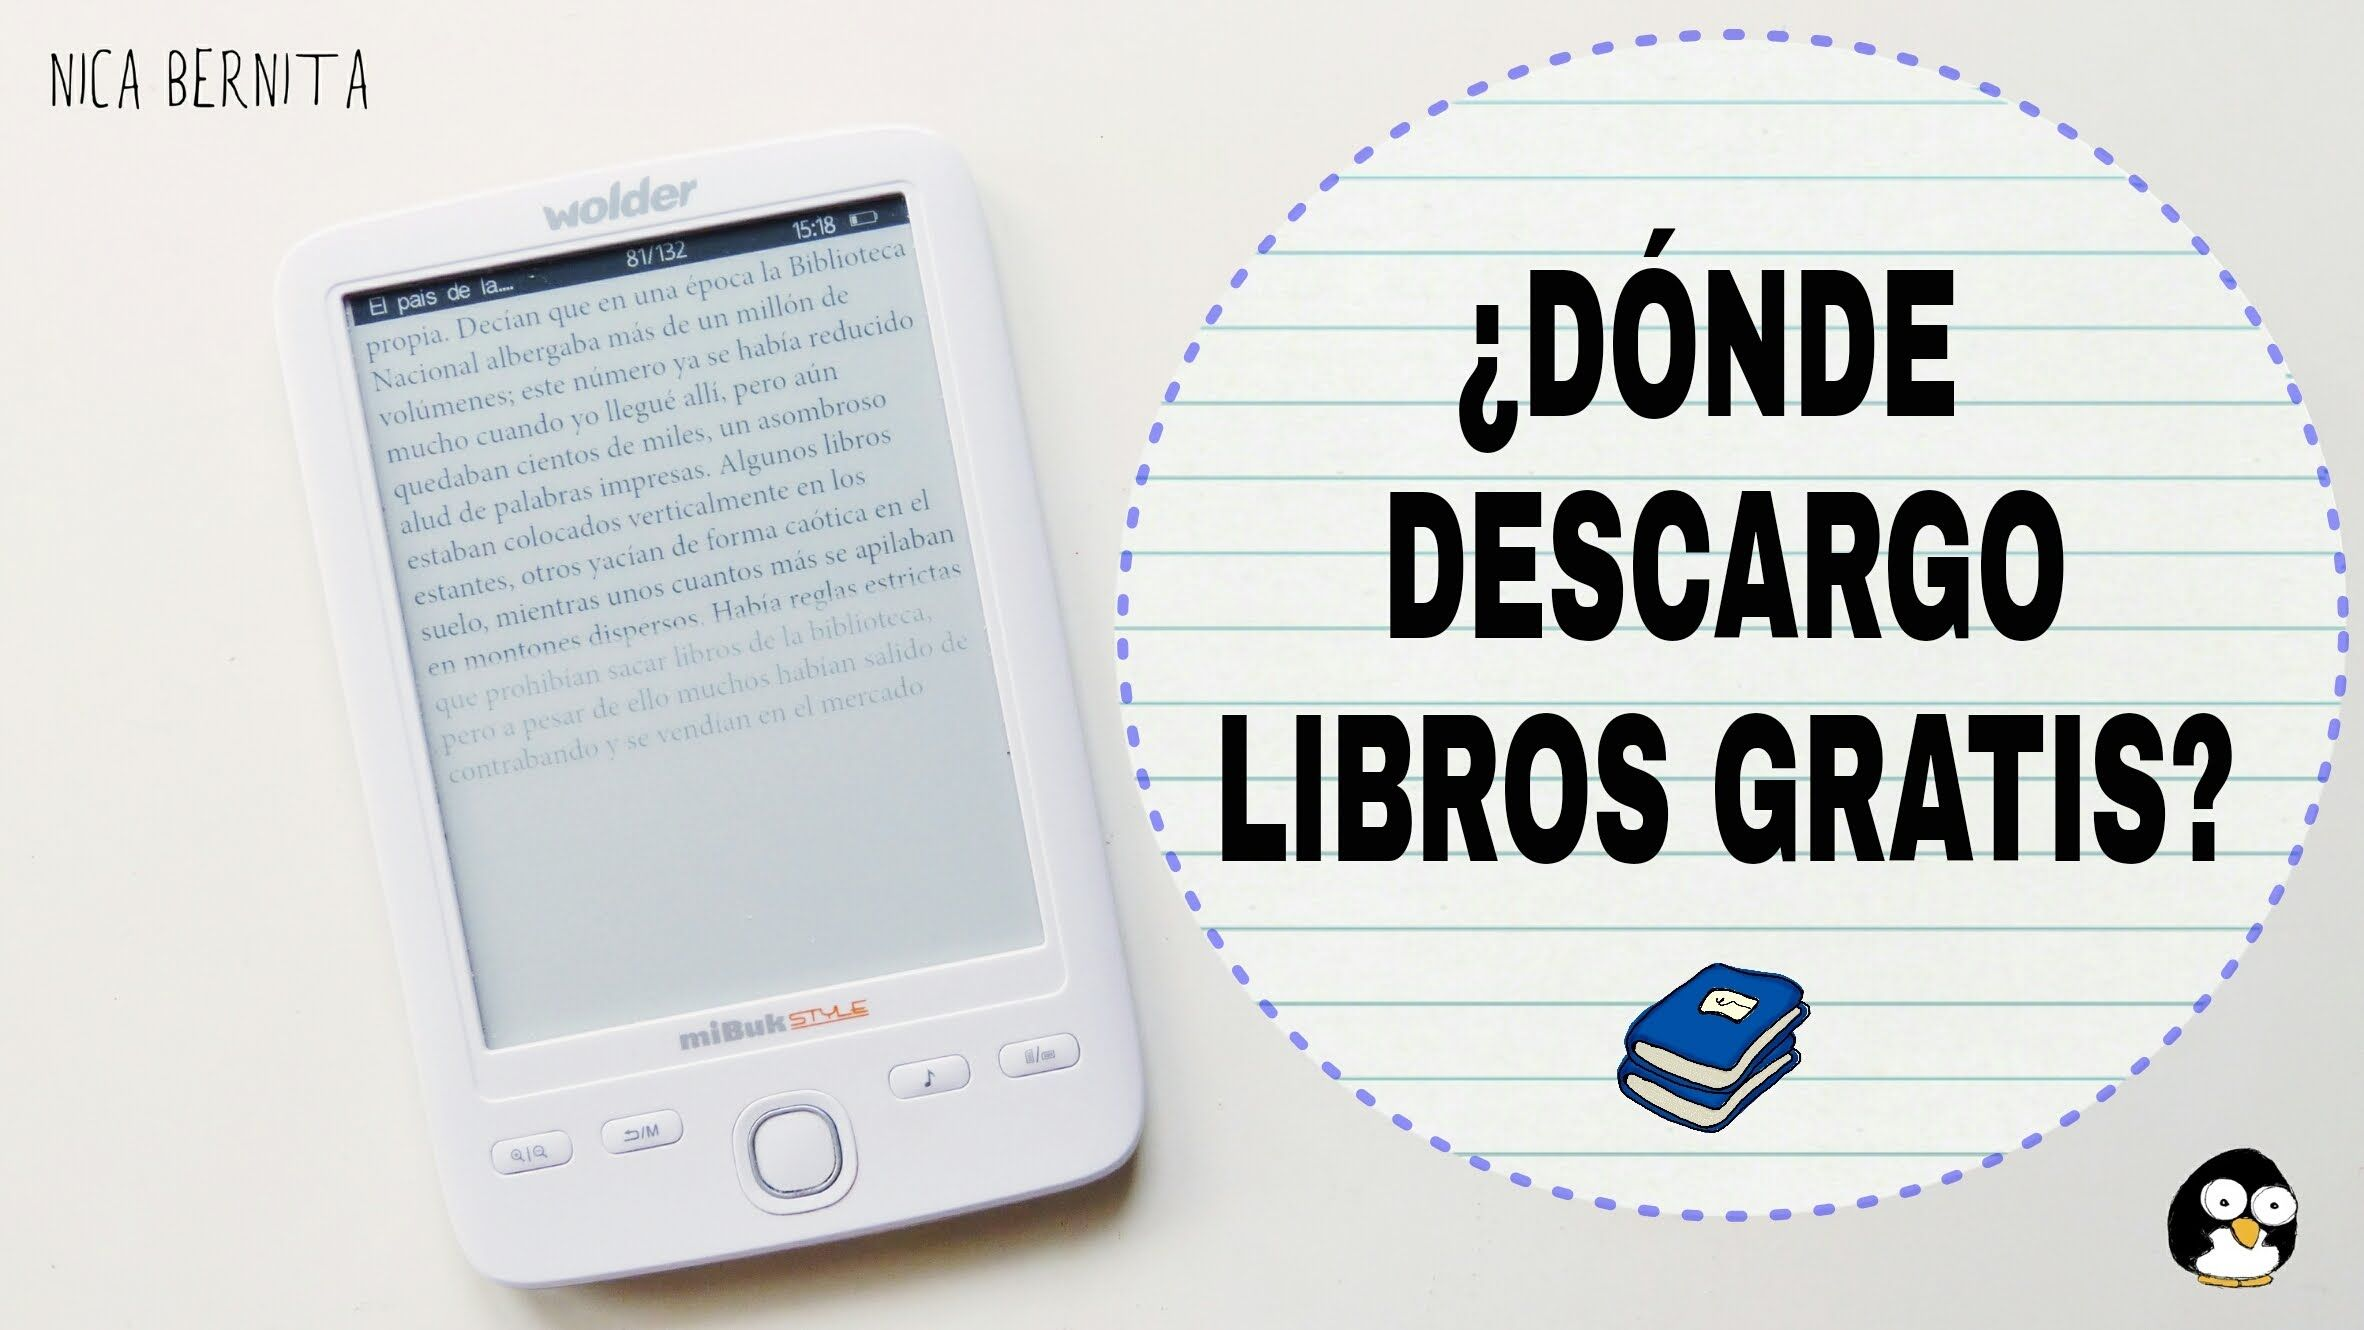 Como Descargar Libros Gratis En Ebook